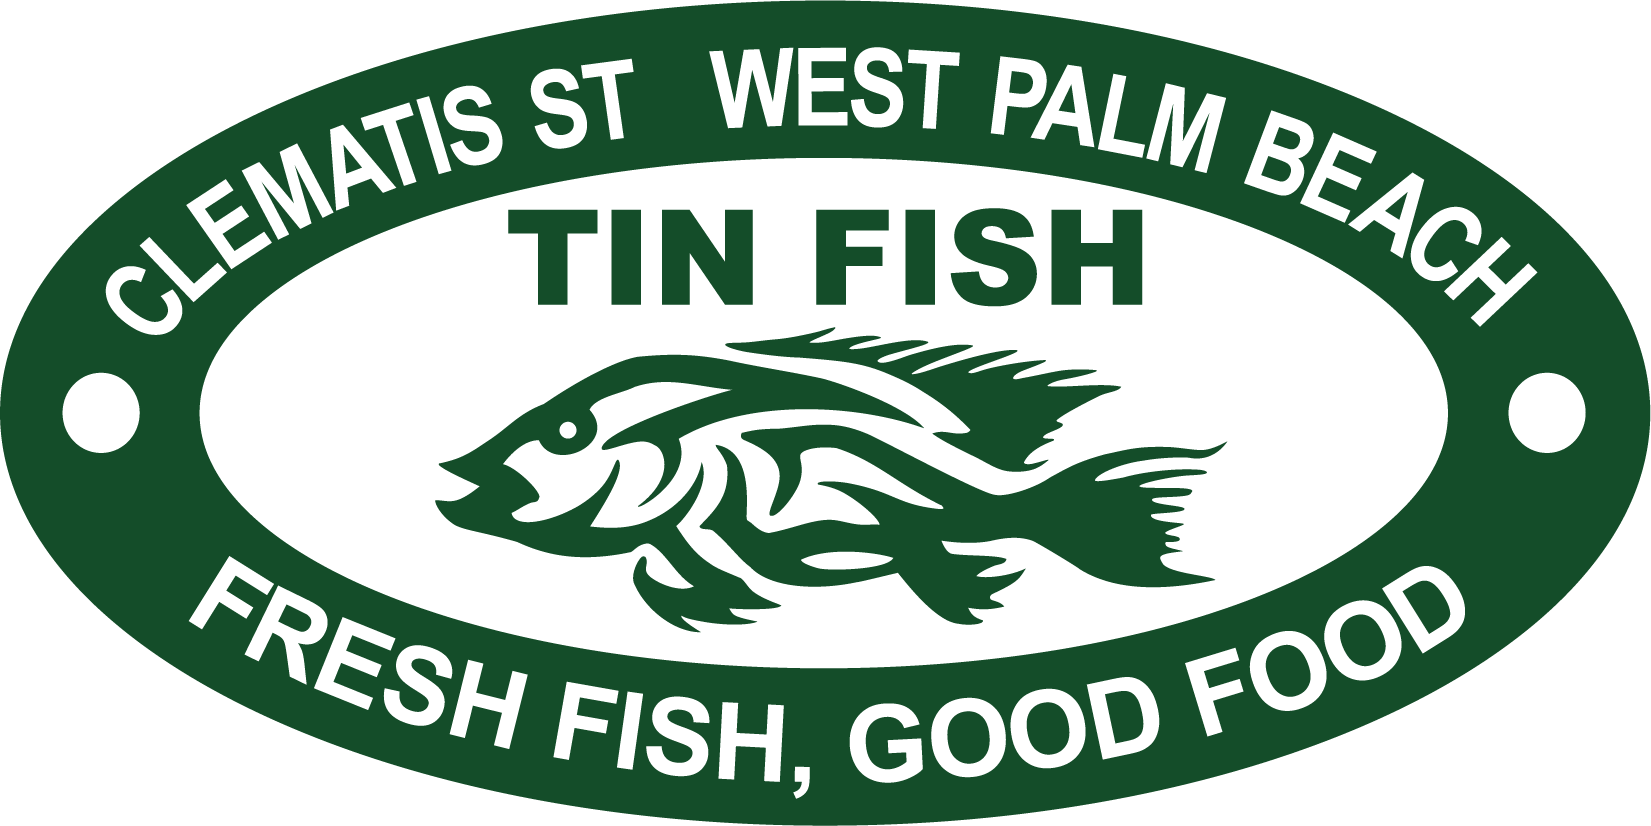 The tin fish 118 s clematis st west palm beach fl for Tin fish menu